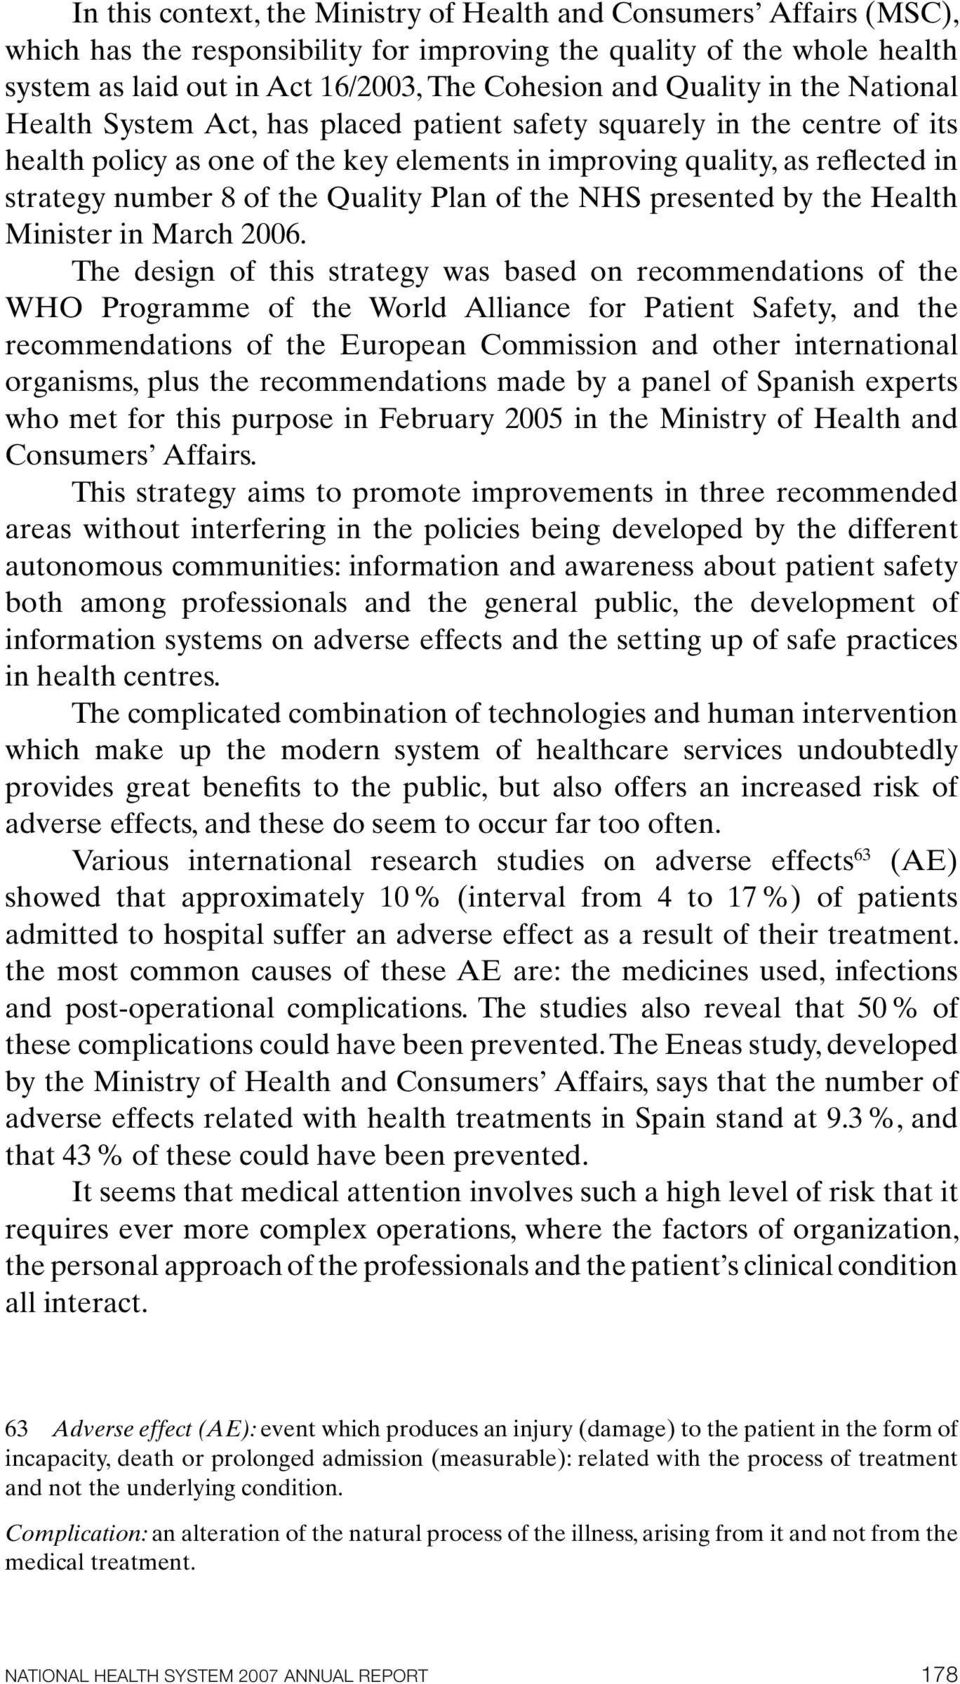 the Quality Plan of the NHS presented by the Health Minister in March 2006.